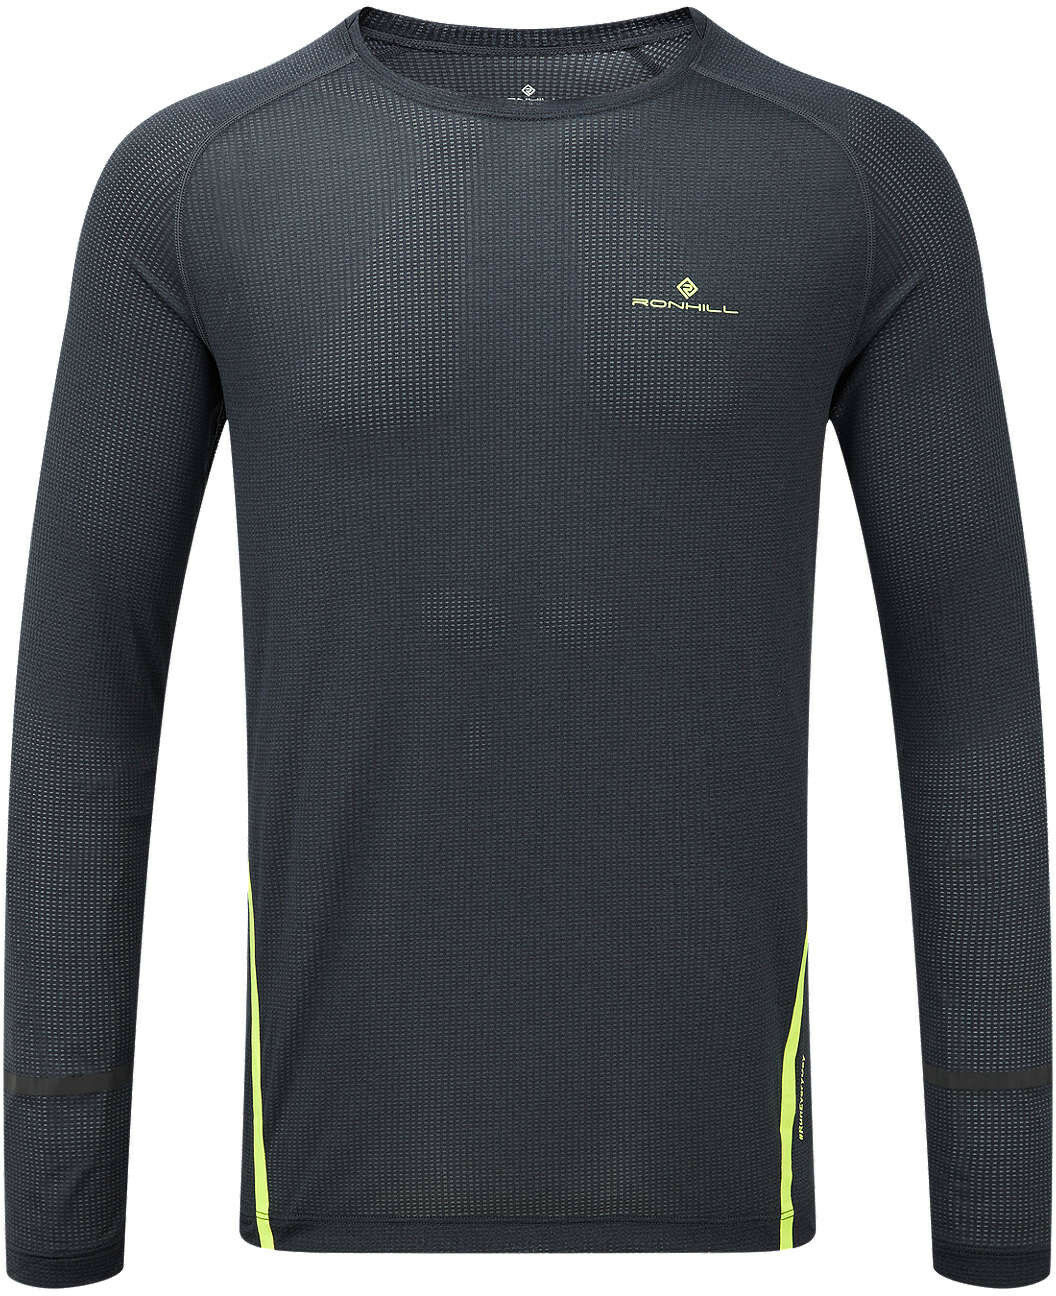 Ronhill Stride Long Sleeve Mens Running Top - Grey